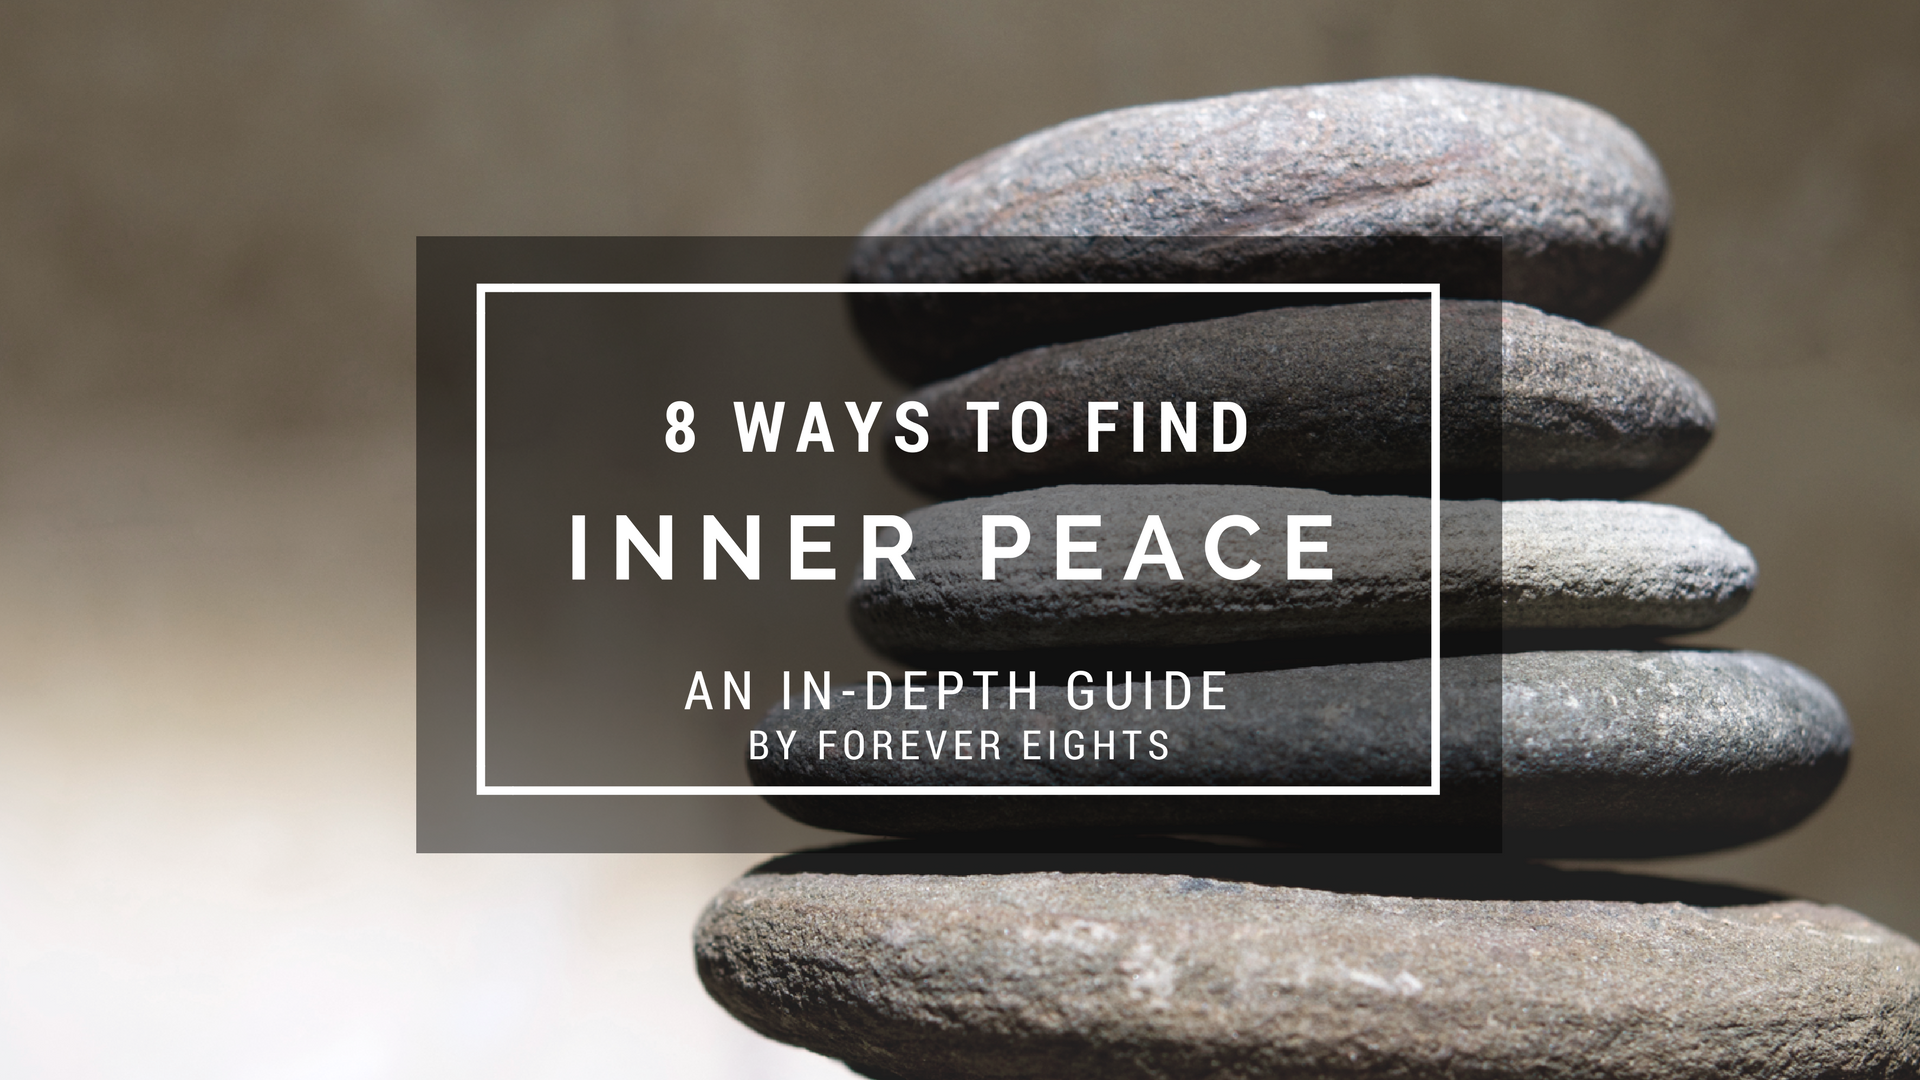 8 Ways to Find Inner Peace: An In-Depth Guide